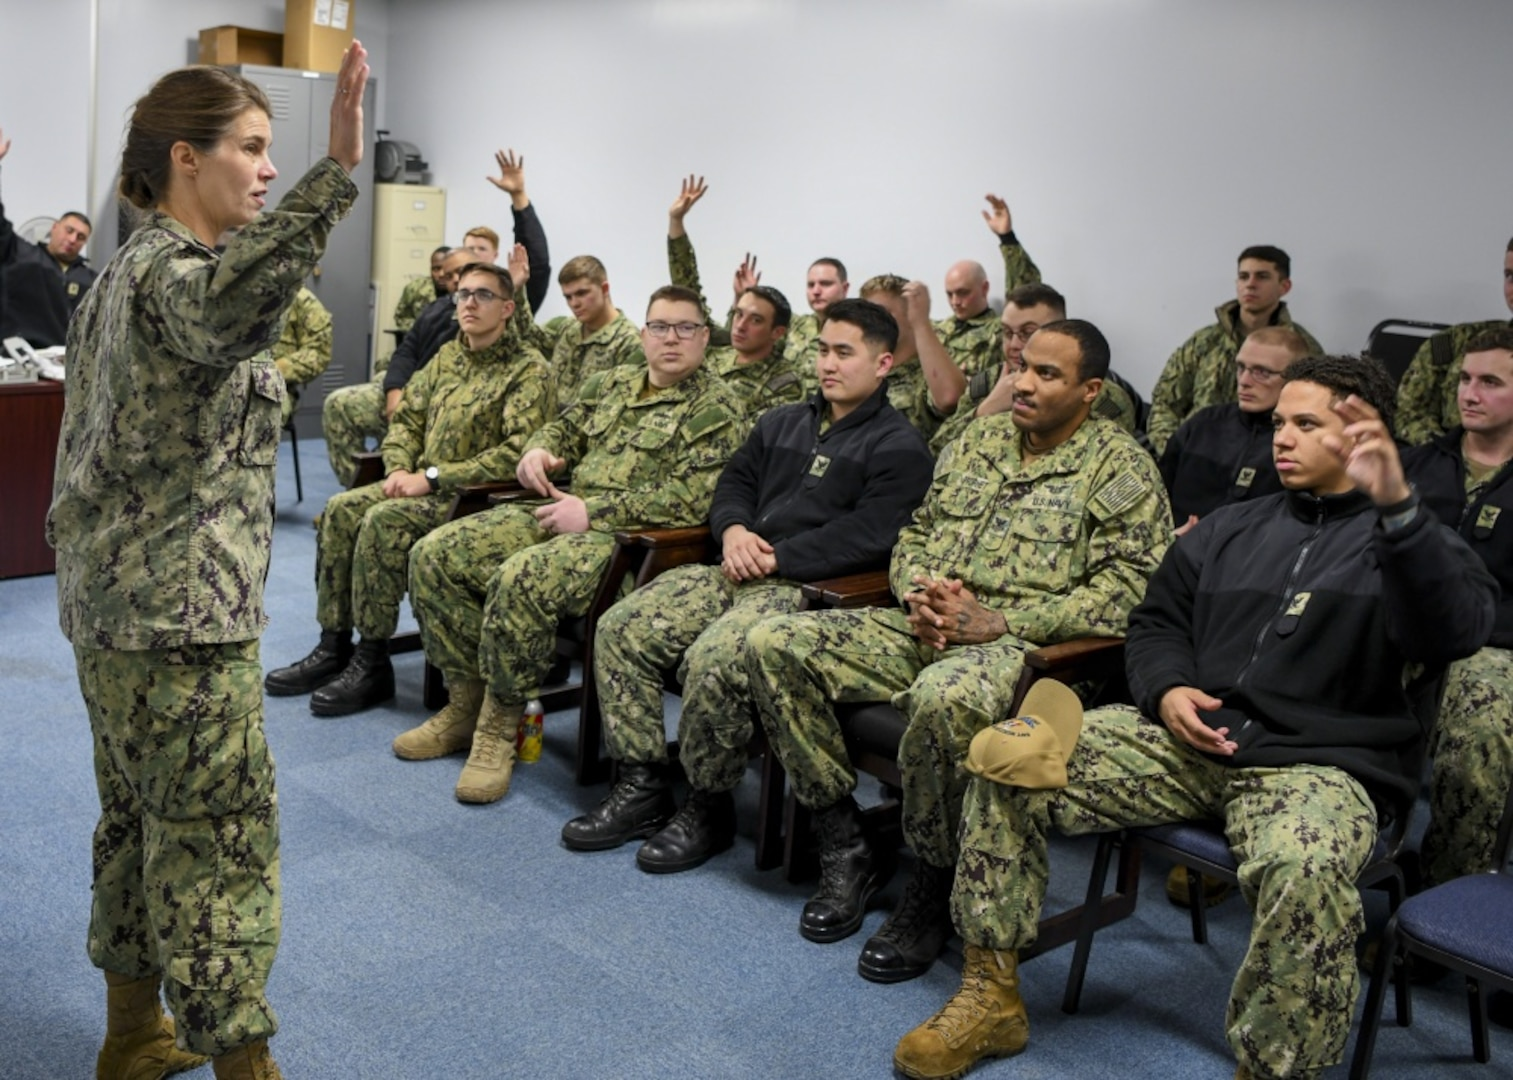 Rear Adm. Kristen B. Fabry, director, Logistics, Fleet Supply and Ordnance, U.S. Pacific Fleet, speaks with Sailors from Navy Munitions Command East Asia Division (NMCPAC EAD) Unit Misawa during a tour of the command. NMCPAC EAD maintains underwater mines, torpedoes, and provides ordnance sentencing, inspection and handling in support of aviation ordnance operations.